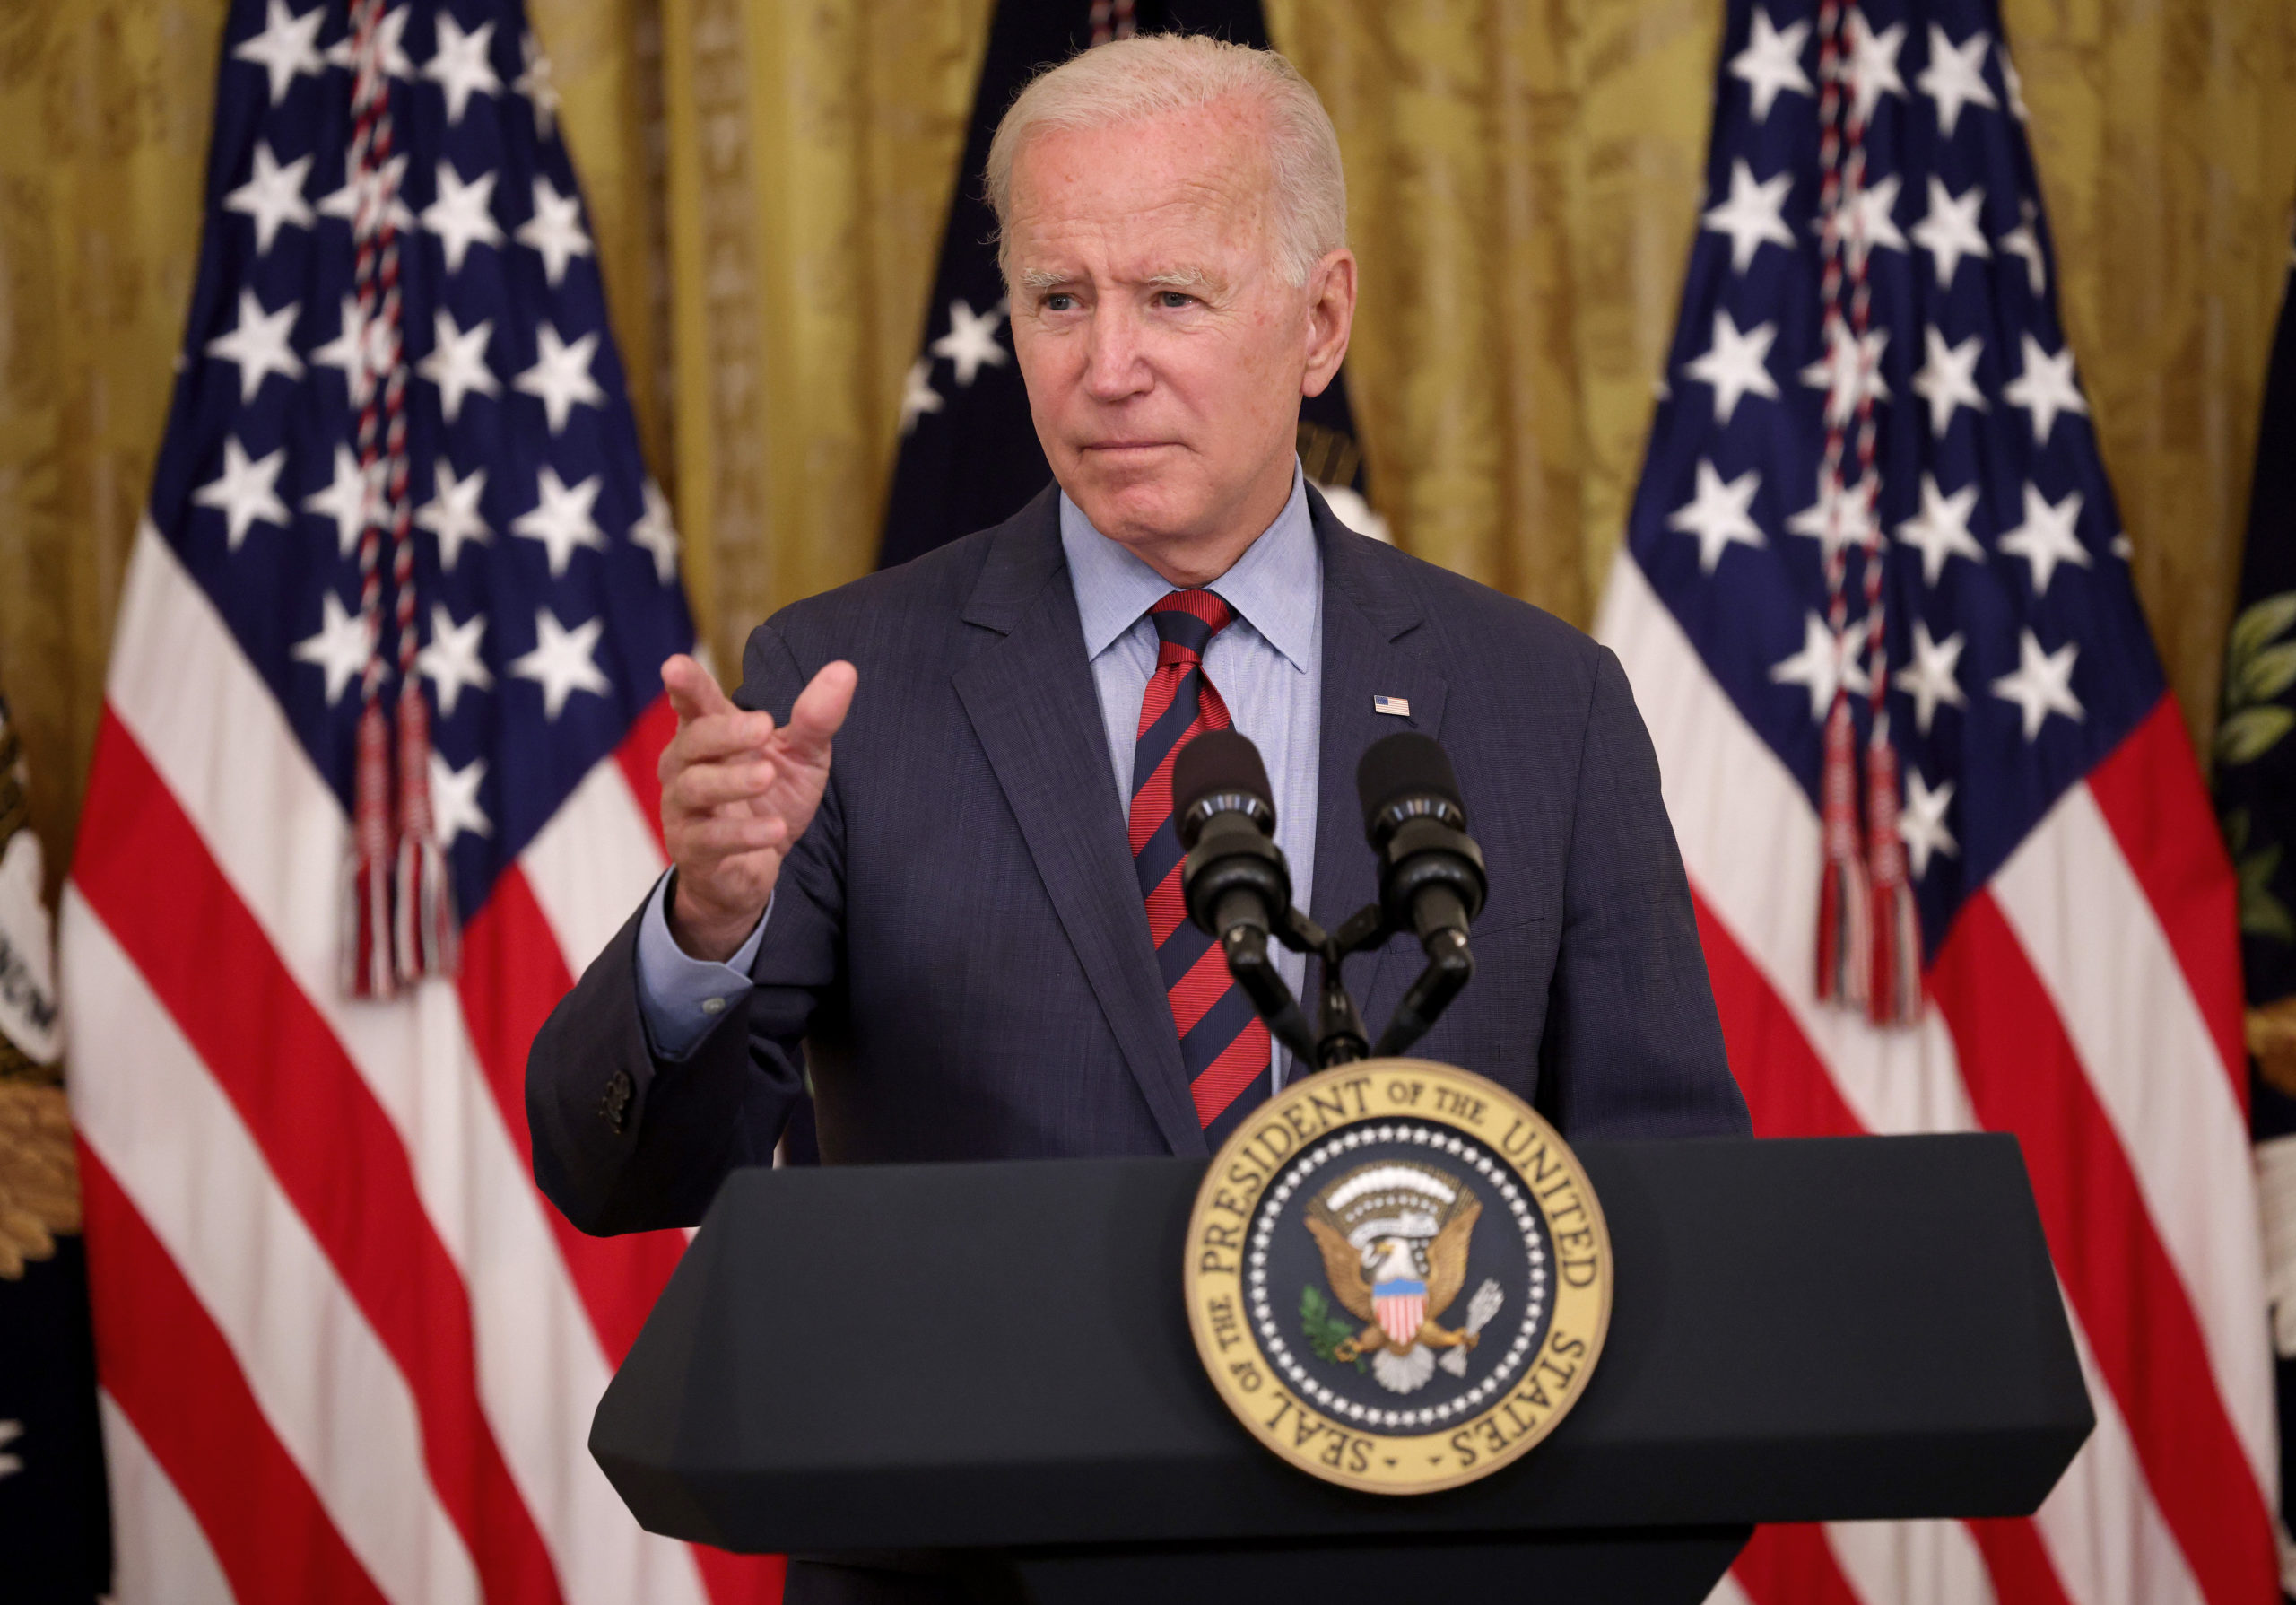 WASHINGTON, DC - AUGUST 03: U.S. President Joe Biden takes questions during an event in the East Room of the White House where he addressed the importance of people getting a COVID-19 vaccination August 3, 2021 in Washington, DC. Biden also said New York Gov. Andrew Cuomo should resign following a state investigation that found Cuomo has sexually harassed multiple women. (Photo by Win McNamee/Getty Images)